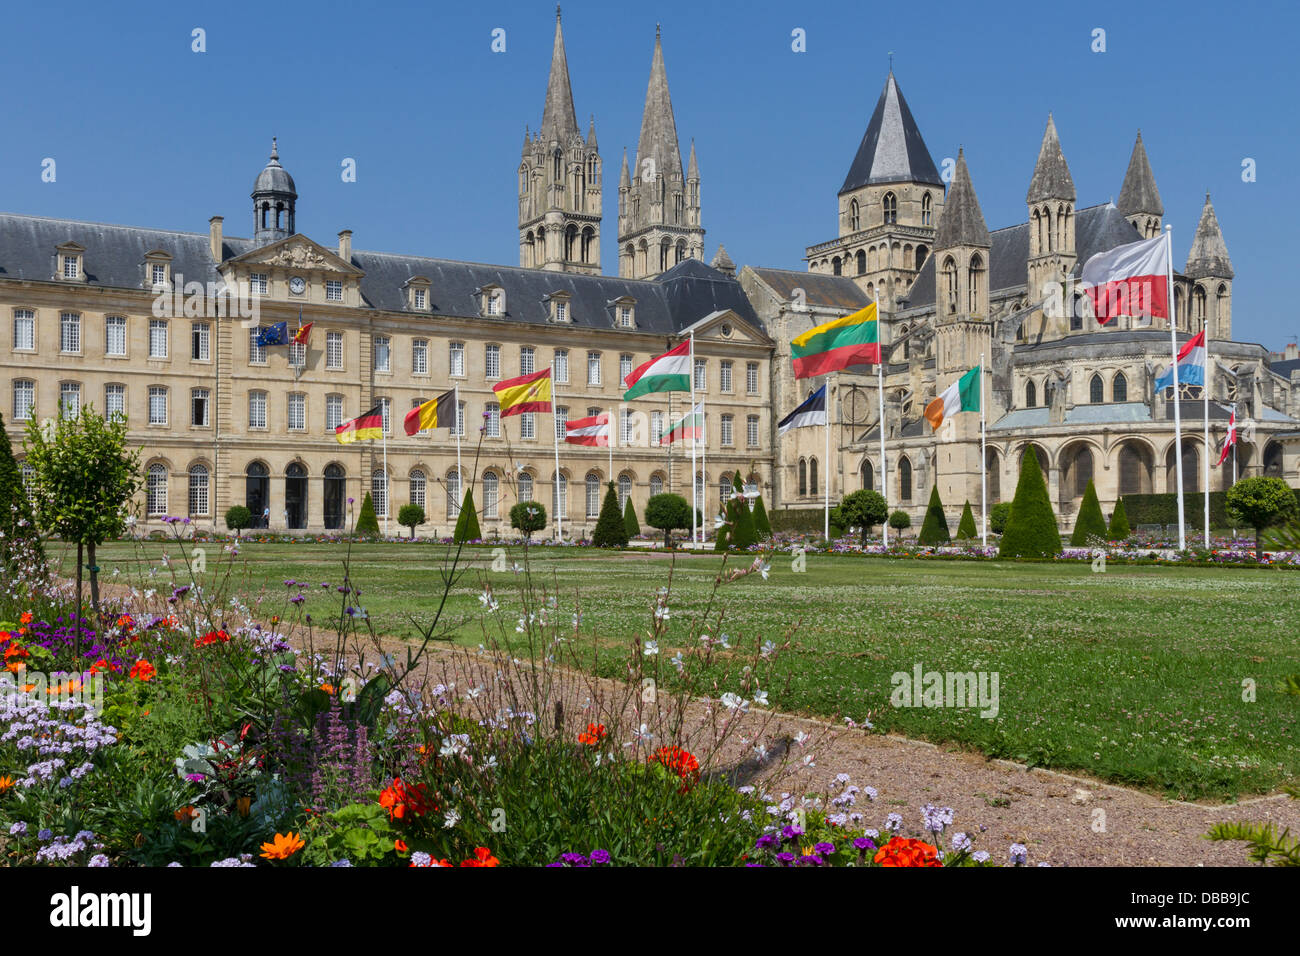 Hotel Saint Etienne Caen Caen Normandy Town Stock Photos And Caen Normandy Town Stock